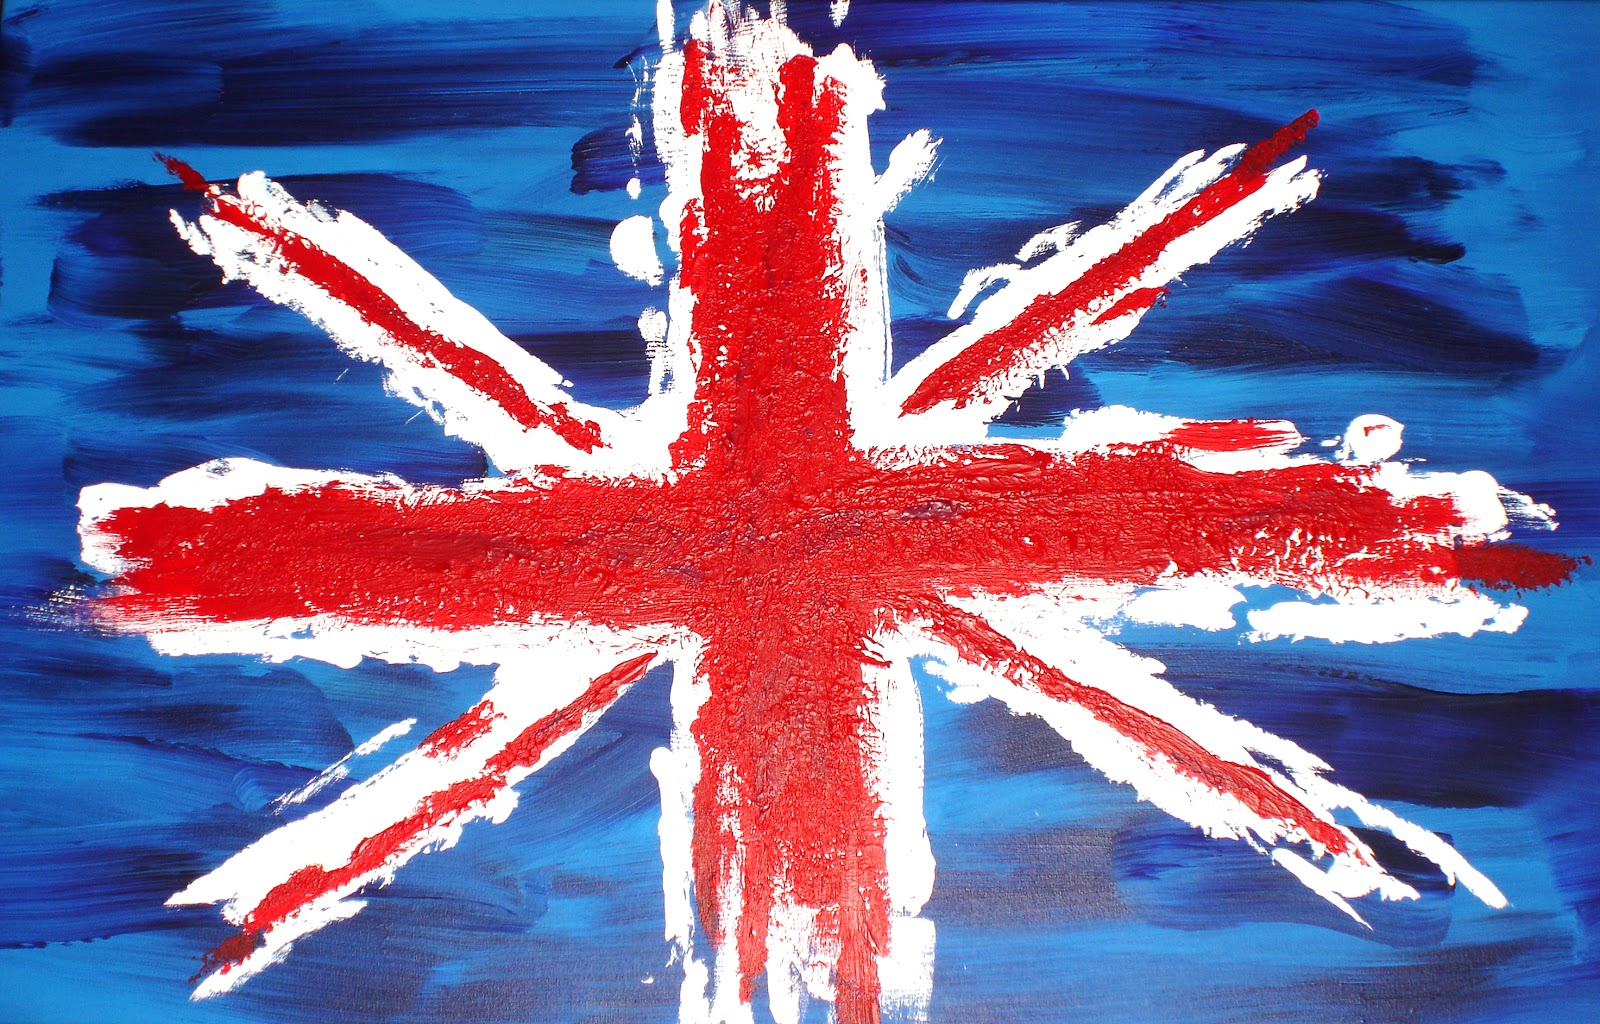 This is United kingdom or England flag wallpaper calledUnion jack 1600x1024